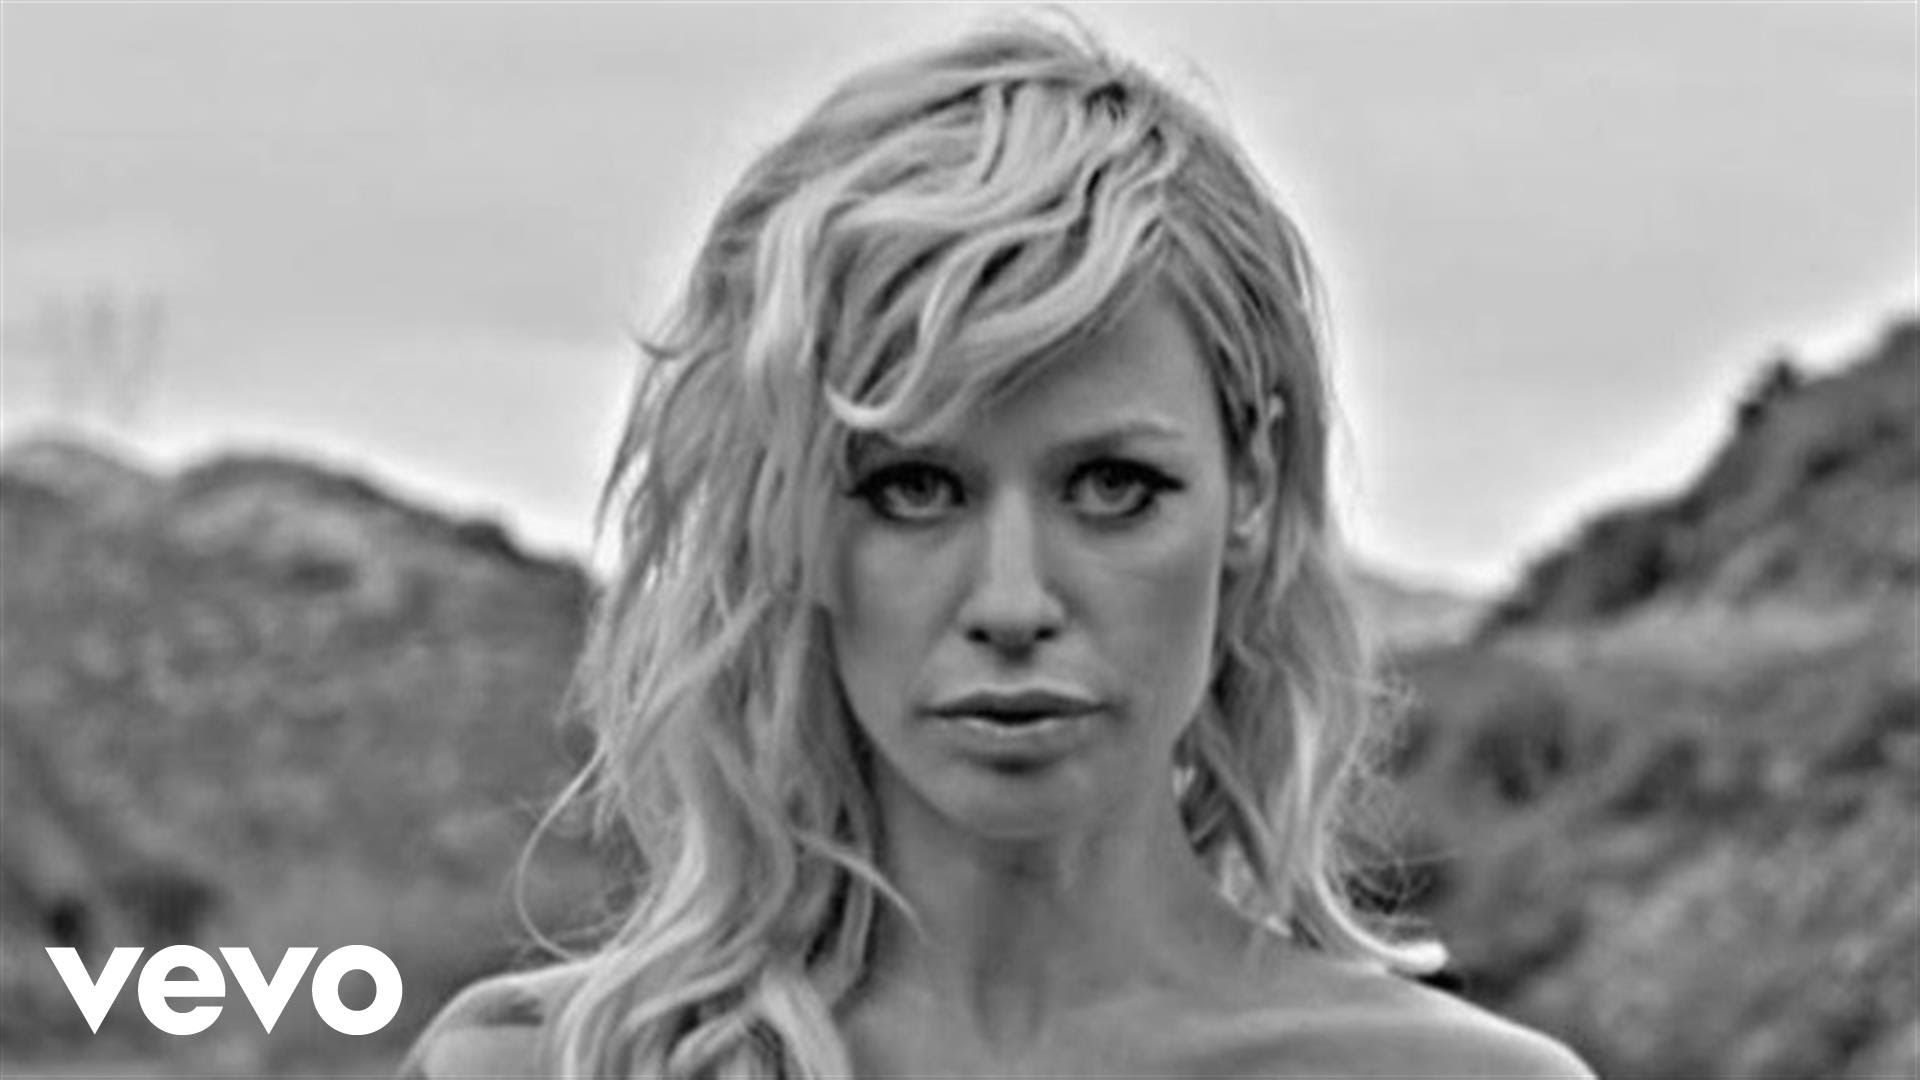 Music video by Gin Wigmore performing Hey Ho. (C) 2010 Universal Music Australia Pty Ltd.